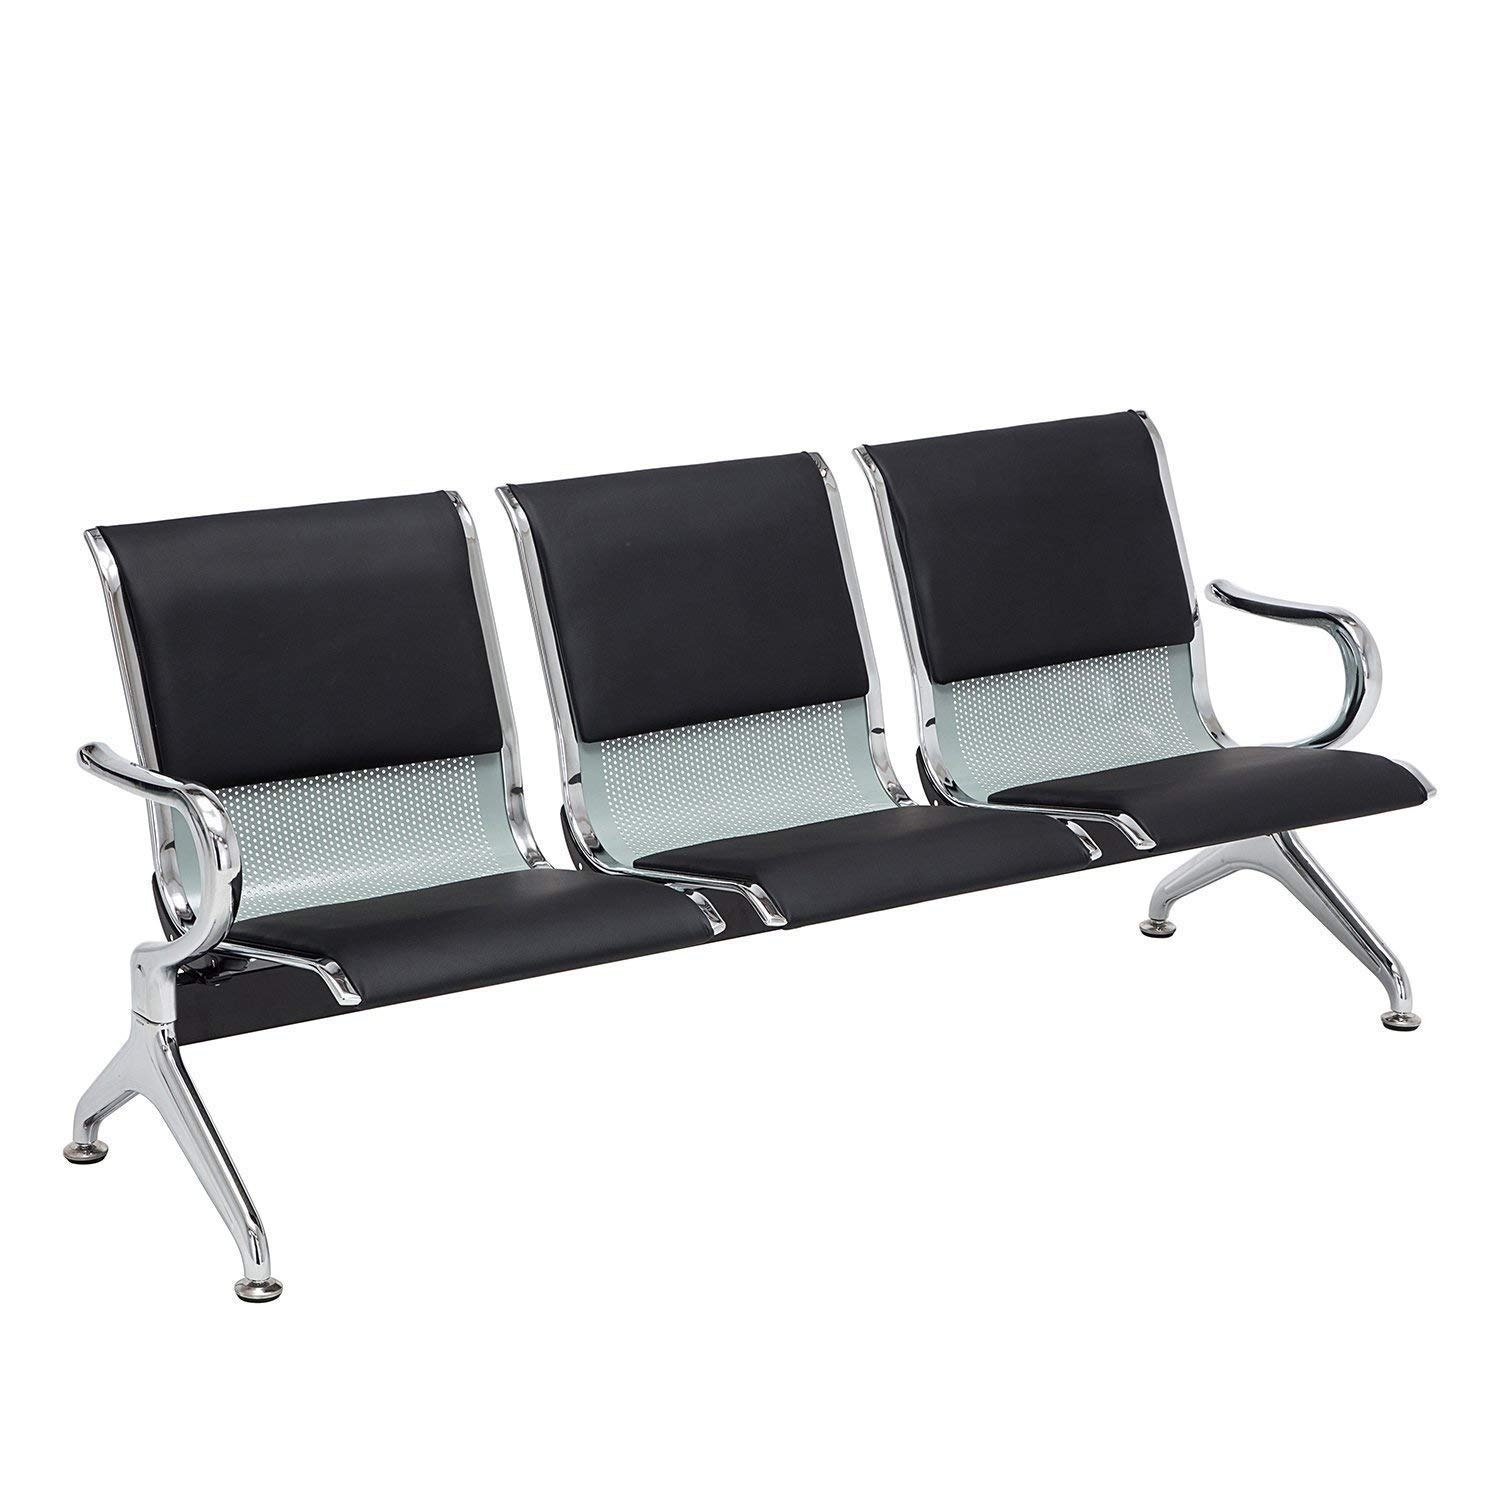 3-Seat PU Leather Guest Chair Waiting Room Chair Airport Reception Bench Garden Salon Barber Benches